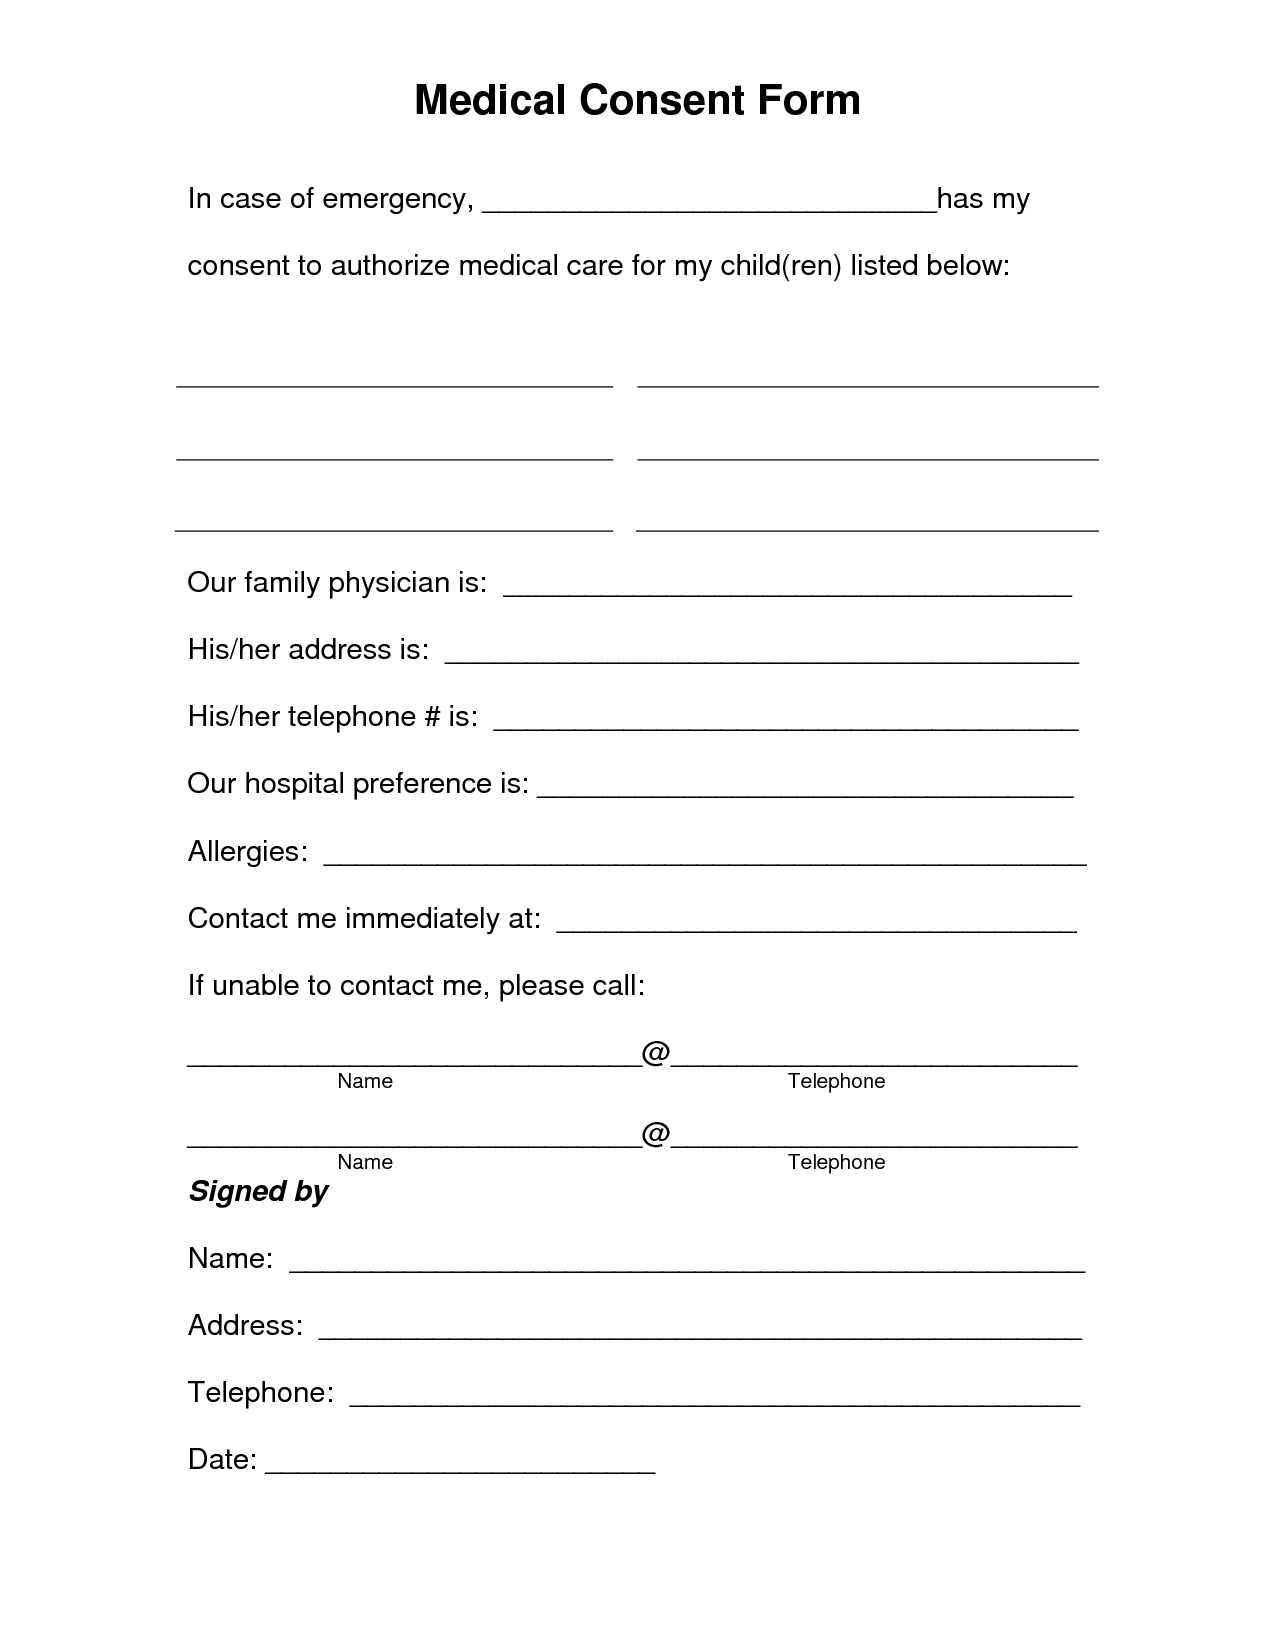 Free Printable Medical Consent Form | Free Medical Consent Form To Free Medical Form Templates